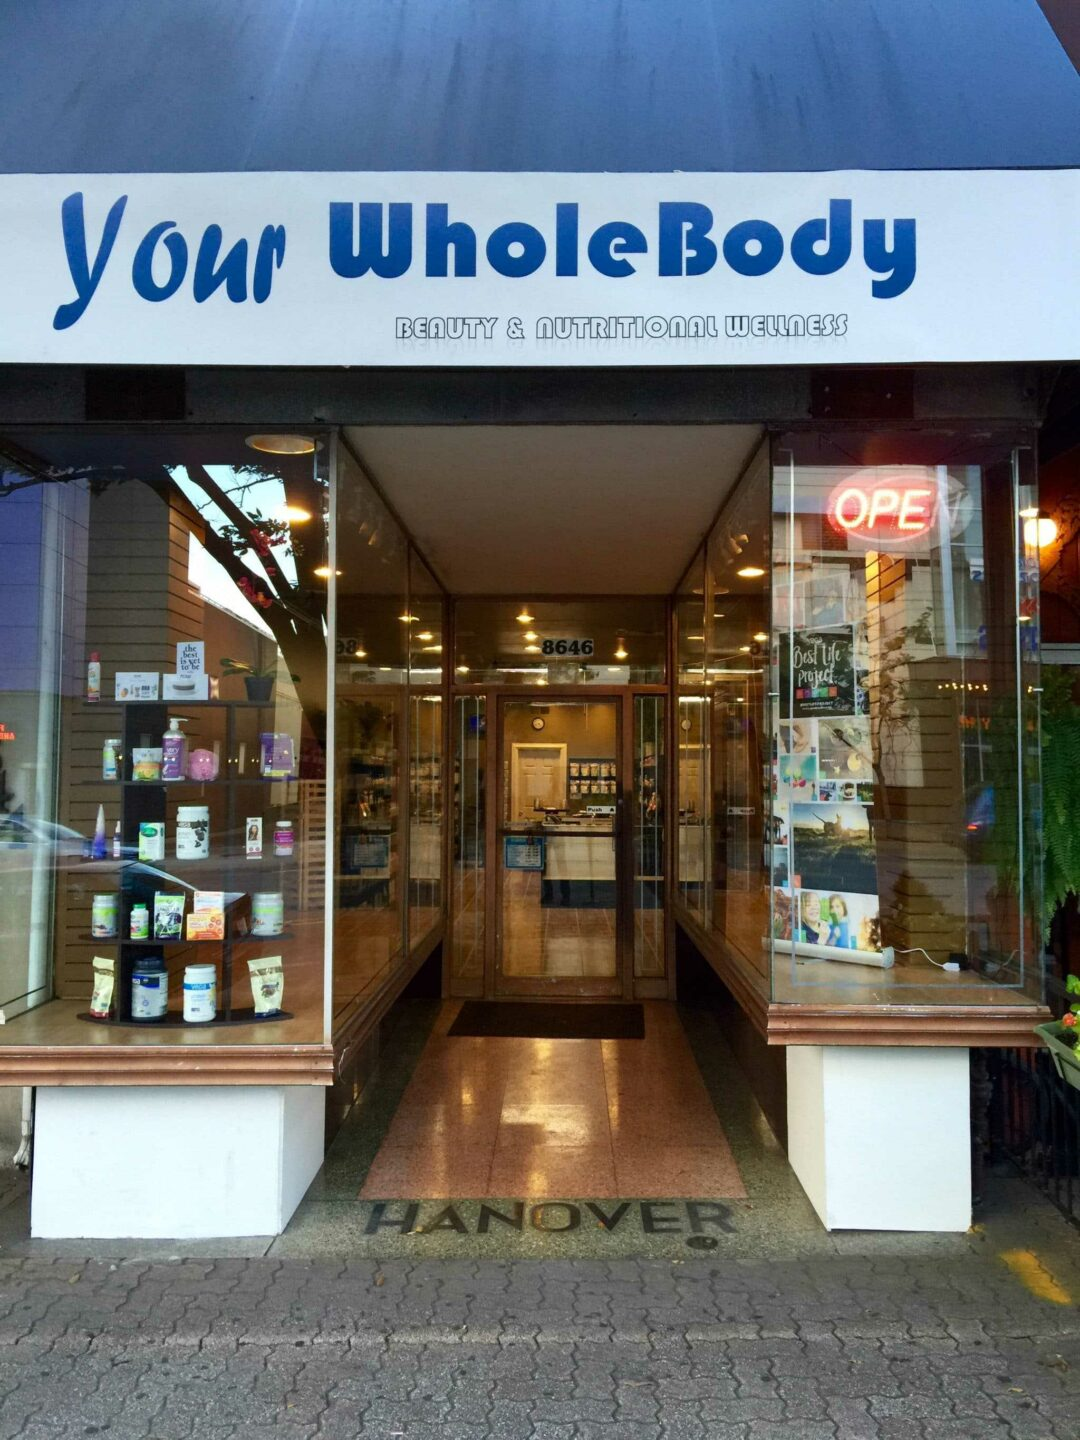 Health, Beauty and Wellness Store Opens - Your Whole Body, a nutrition and wellness retailer, has opened at 8646 Colesville Rd. next to Kao Thai in downtown Silver Spring.